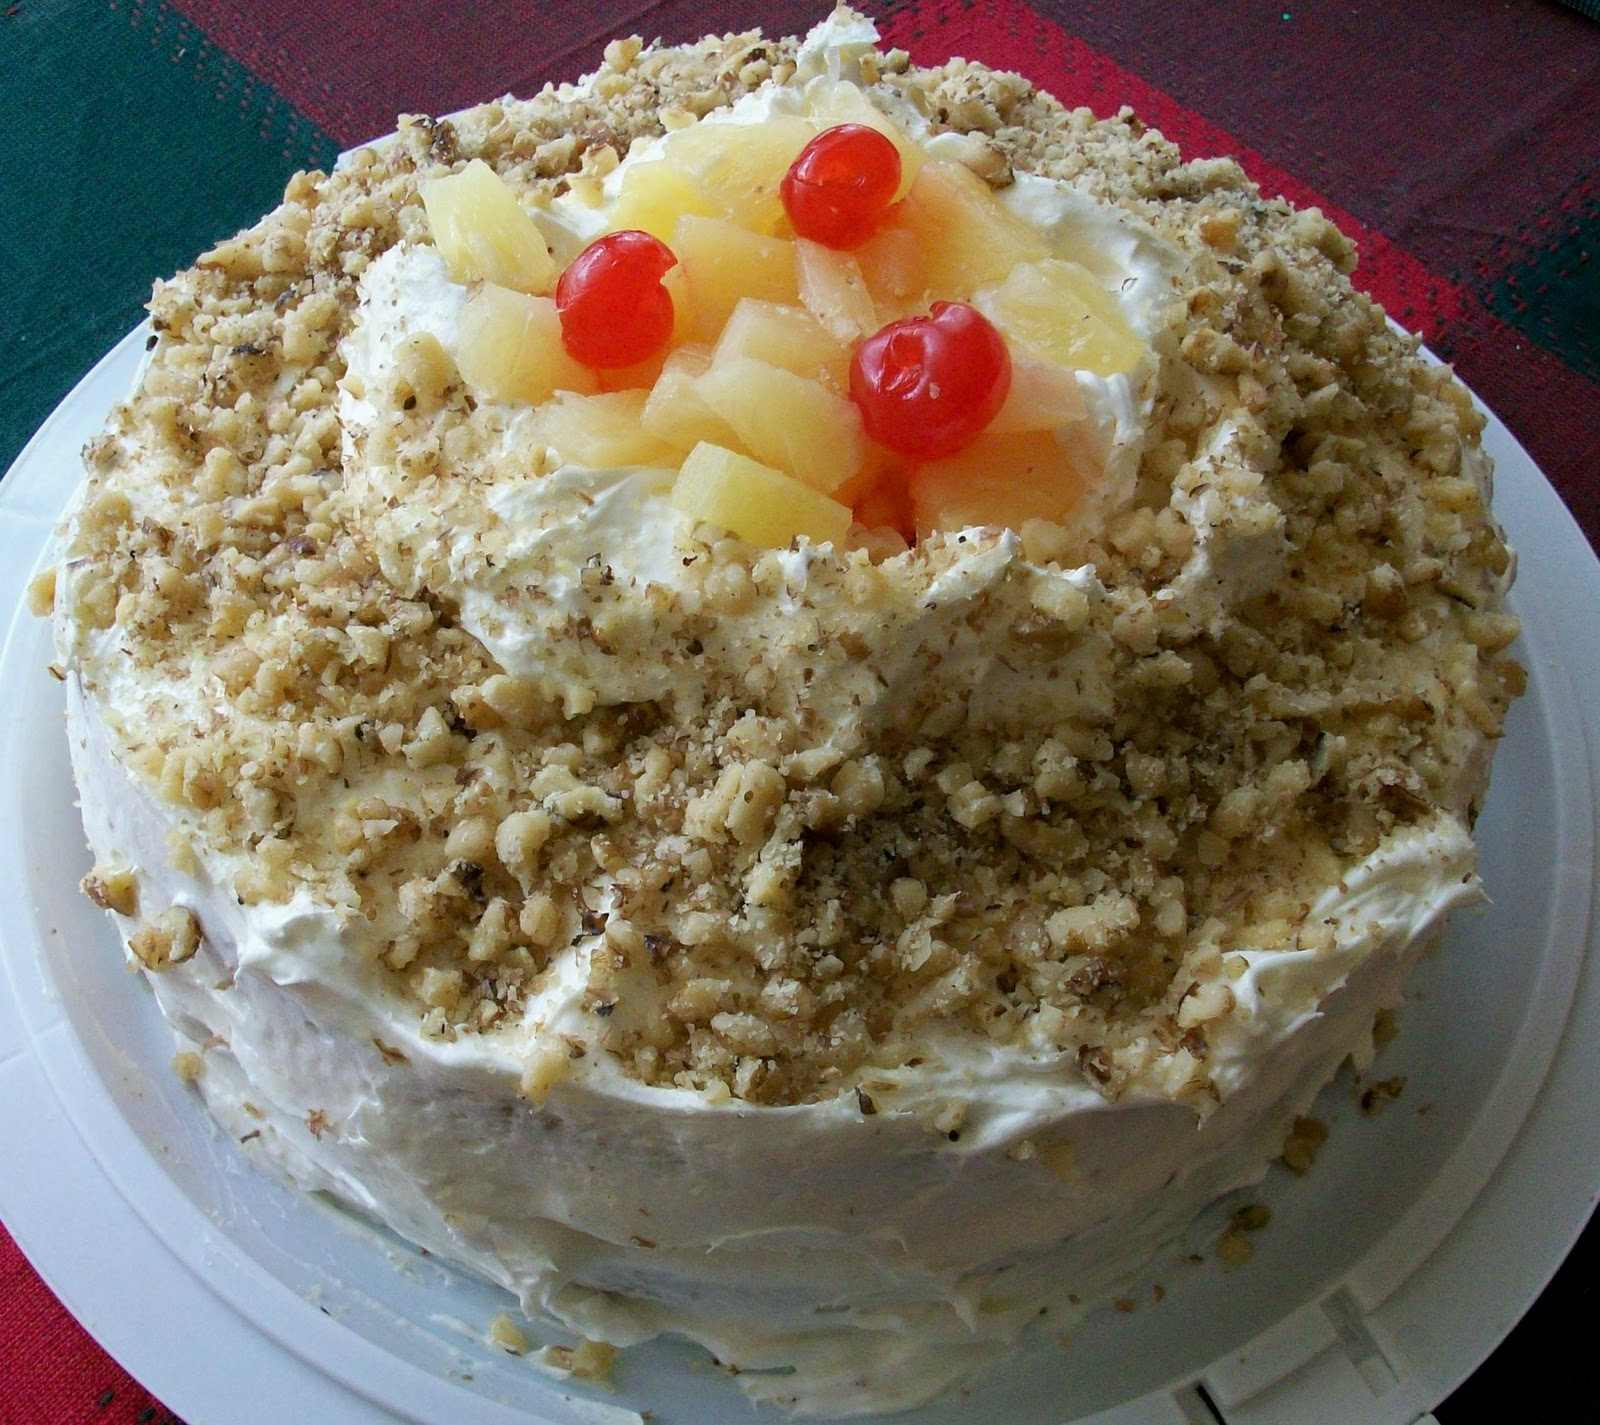 Duncan Hines Carrot Cake Recipe With Pineapple